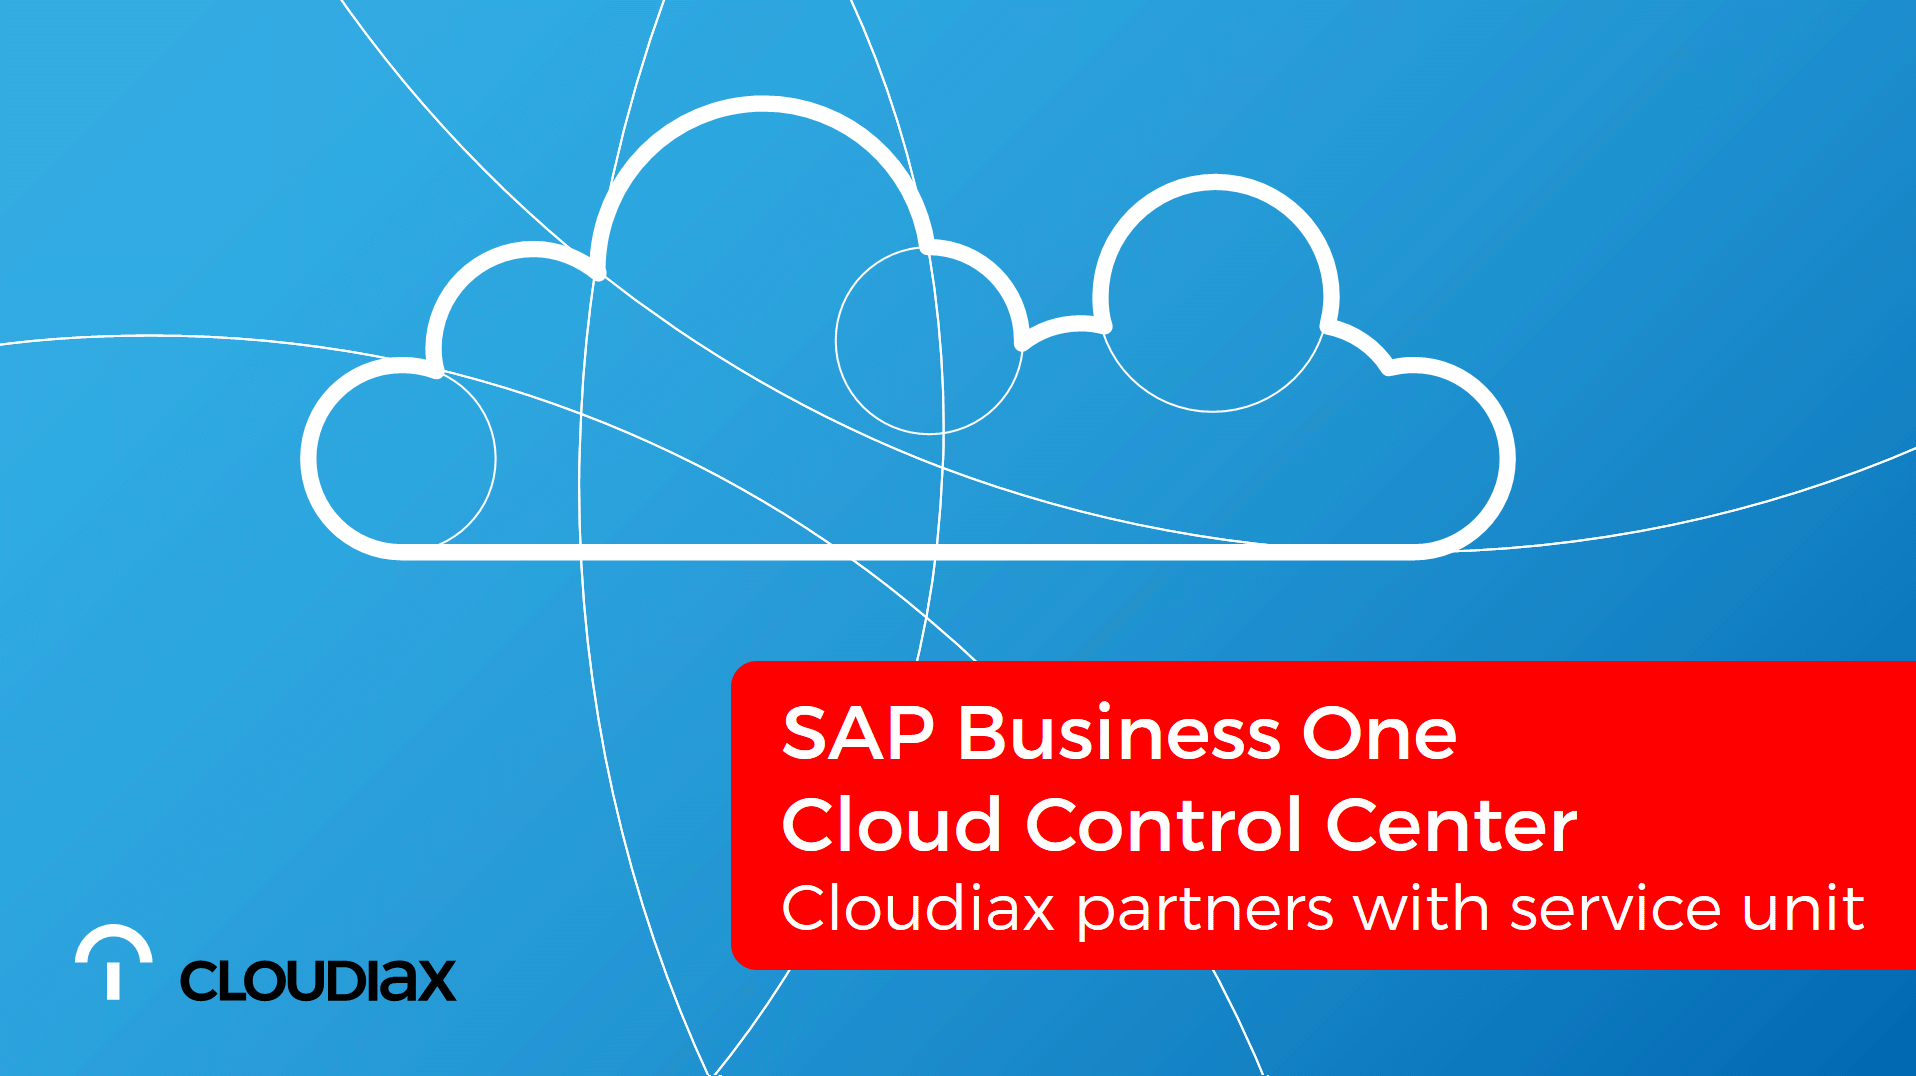 SAP Cloud Control Center - Cloudiax partners with service unit